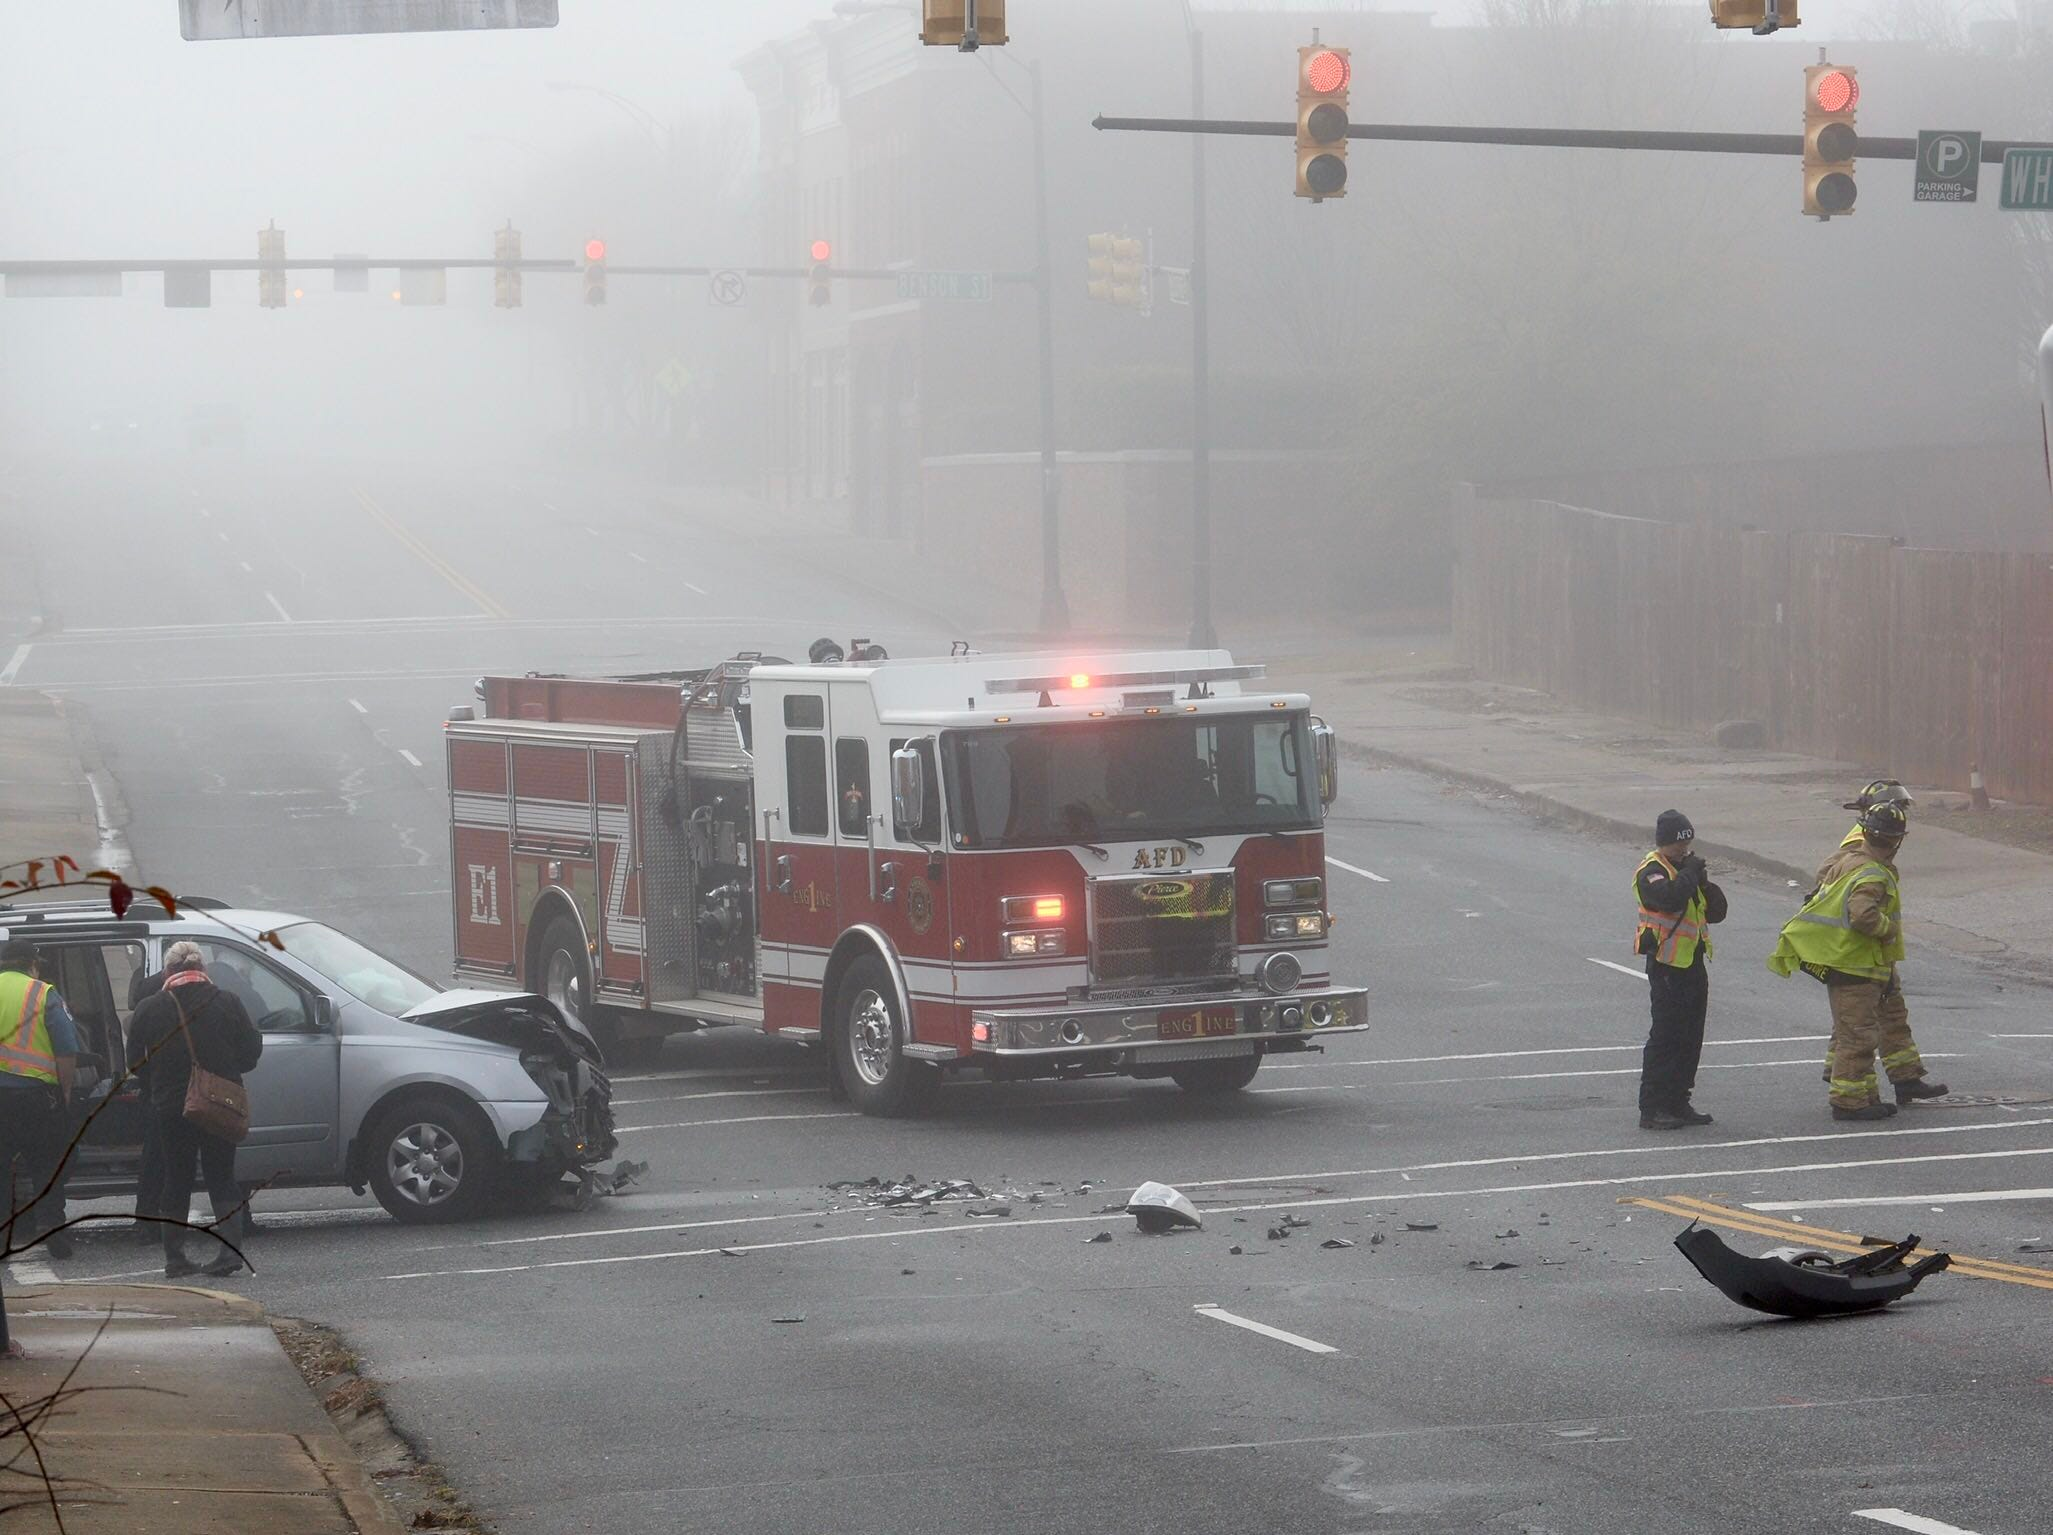 Anderson Fire Department and a Medshore ambulance at scene of a two-vehicle crash at McDuffie Street and East Whitner on Tuesday, Dec. 11, 2018.